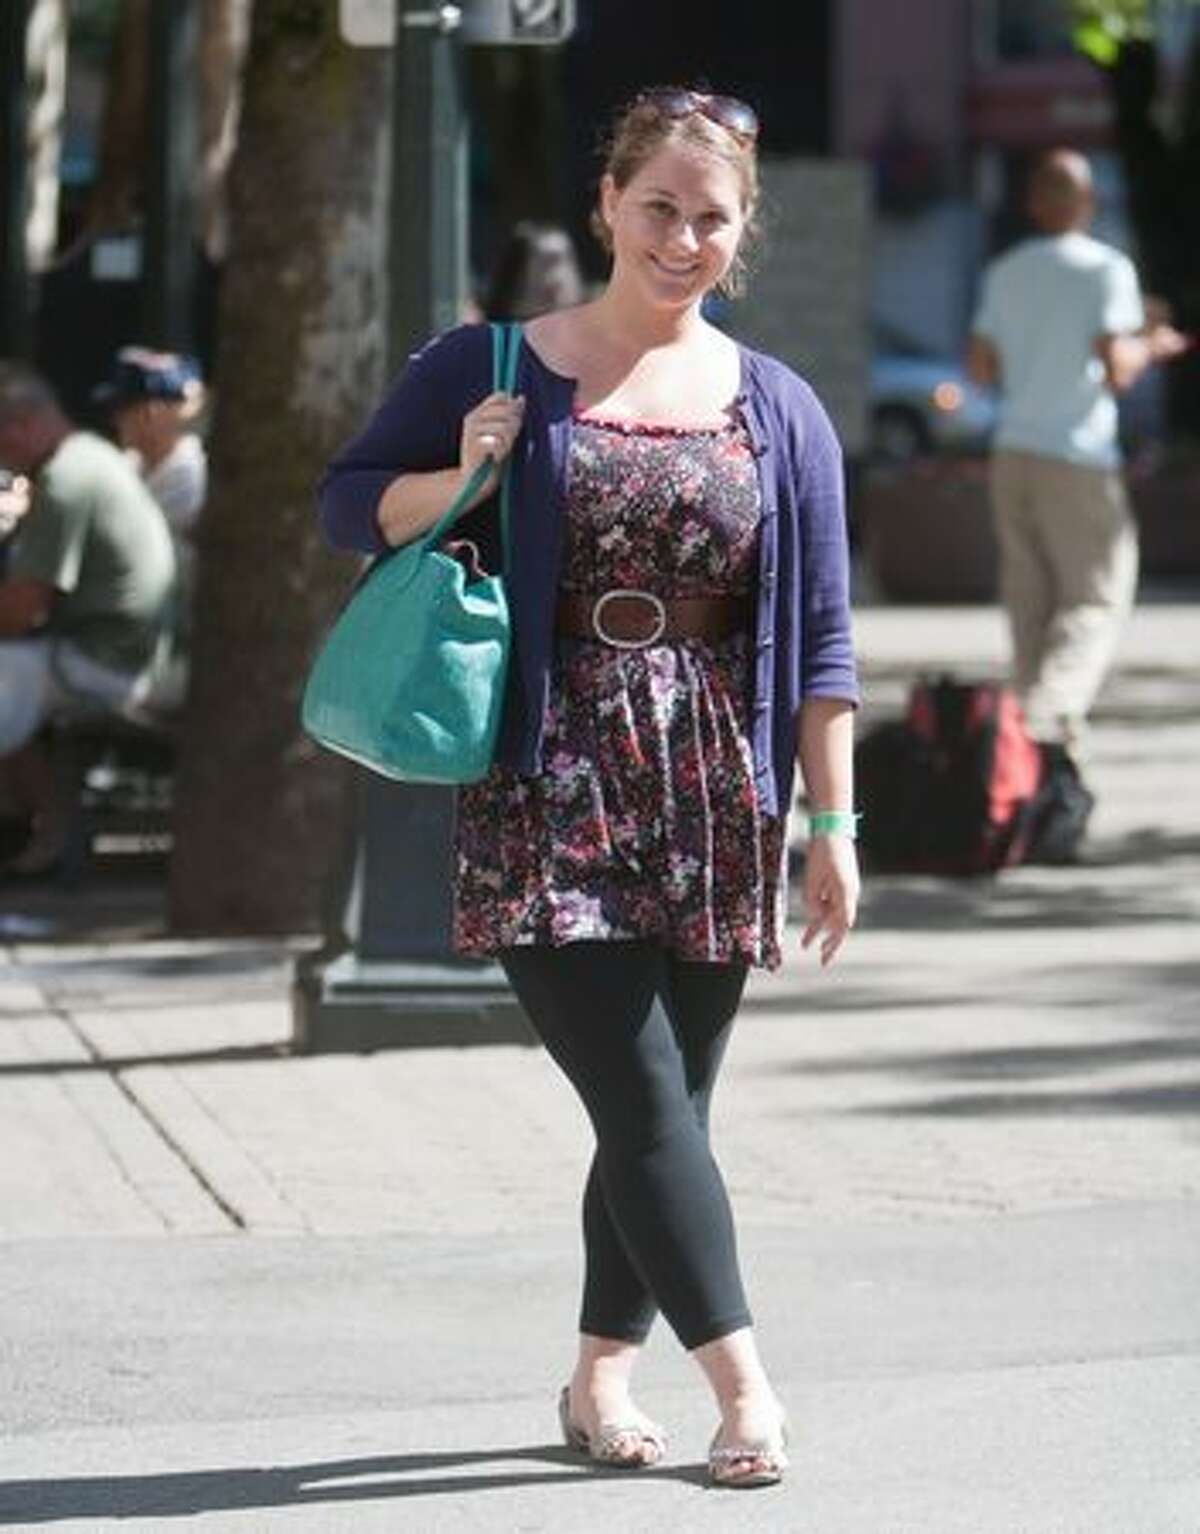 Rebekah Hess mixes it up with her layered look dressing her summer dress with a purple sweater. She completes her sassy summer look with a complimenting turquoise bag and silver slip-ons.